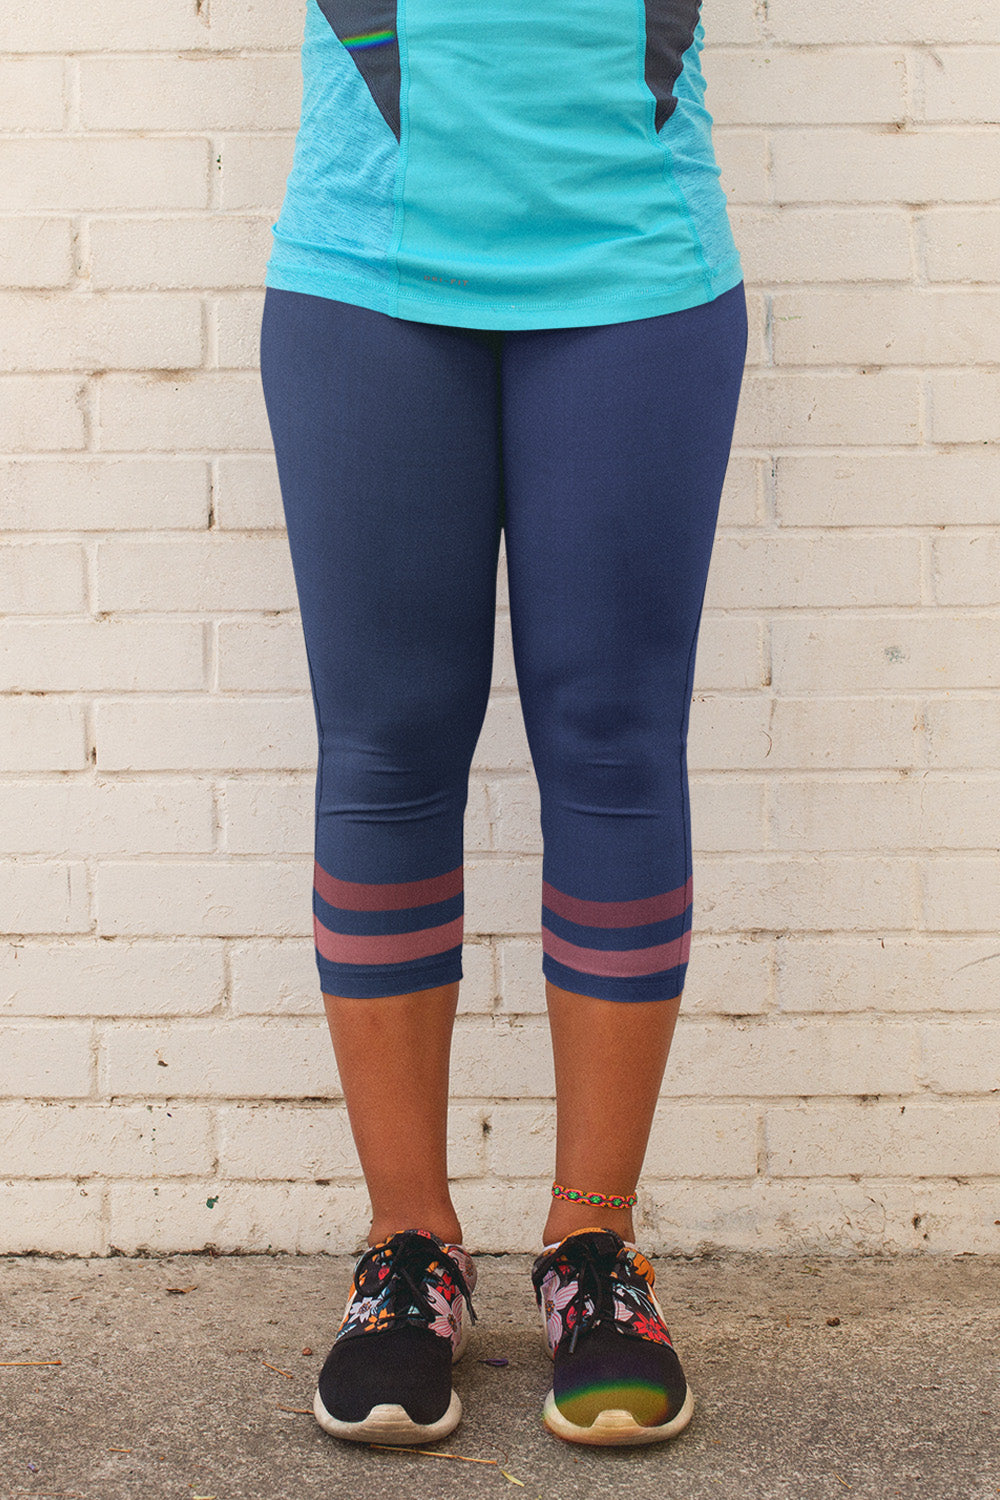 dark-blue-pink-sporty-stripes-elegant-women-yoga-capri-leggings